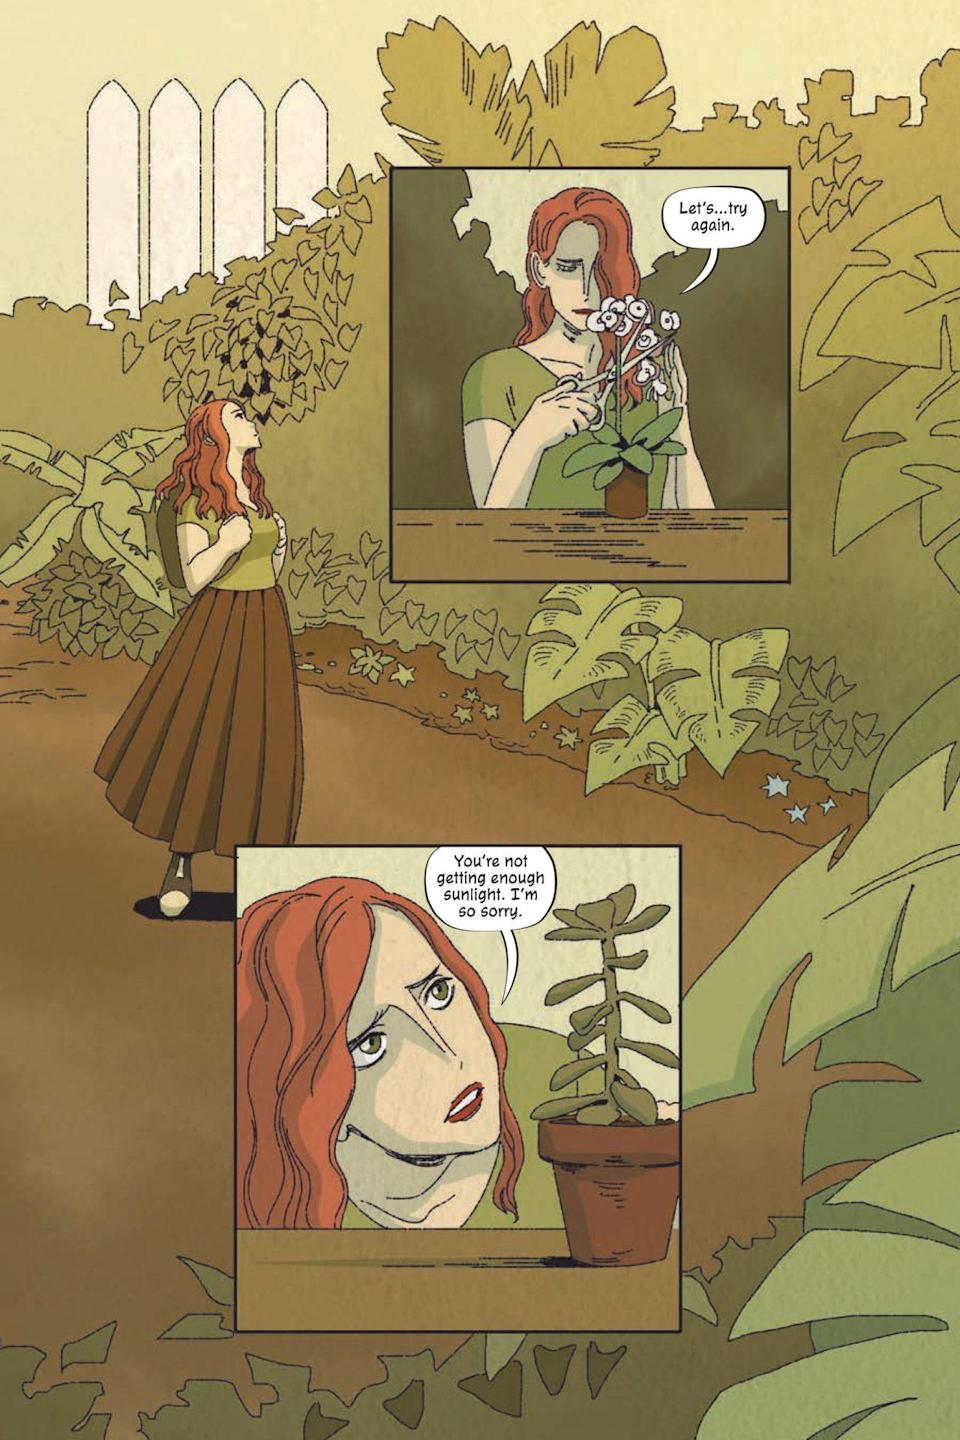 A page from Poison Ivy Thorns shows Ivy in the school garden tending flowers